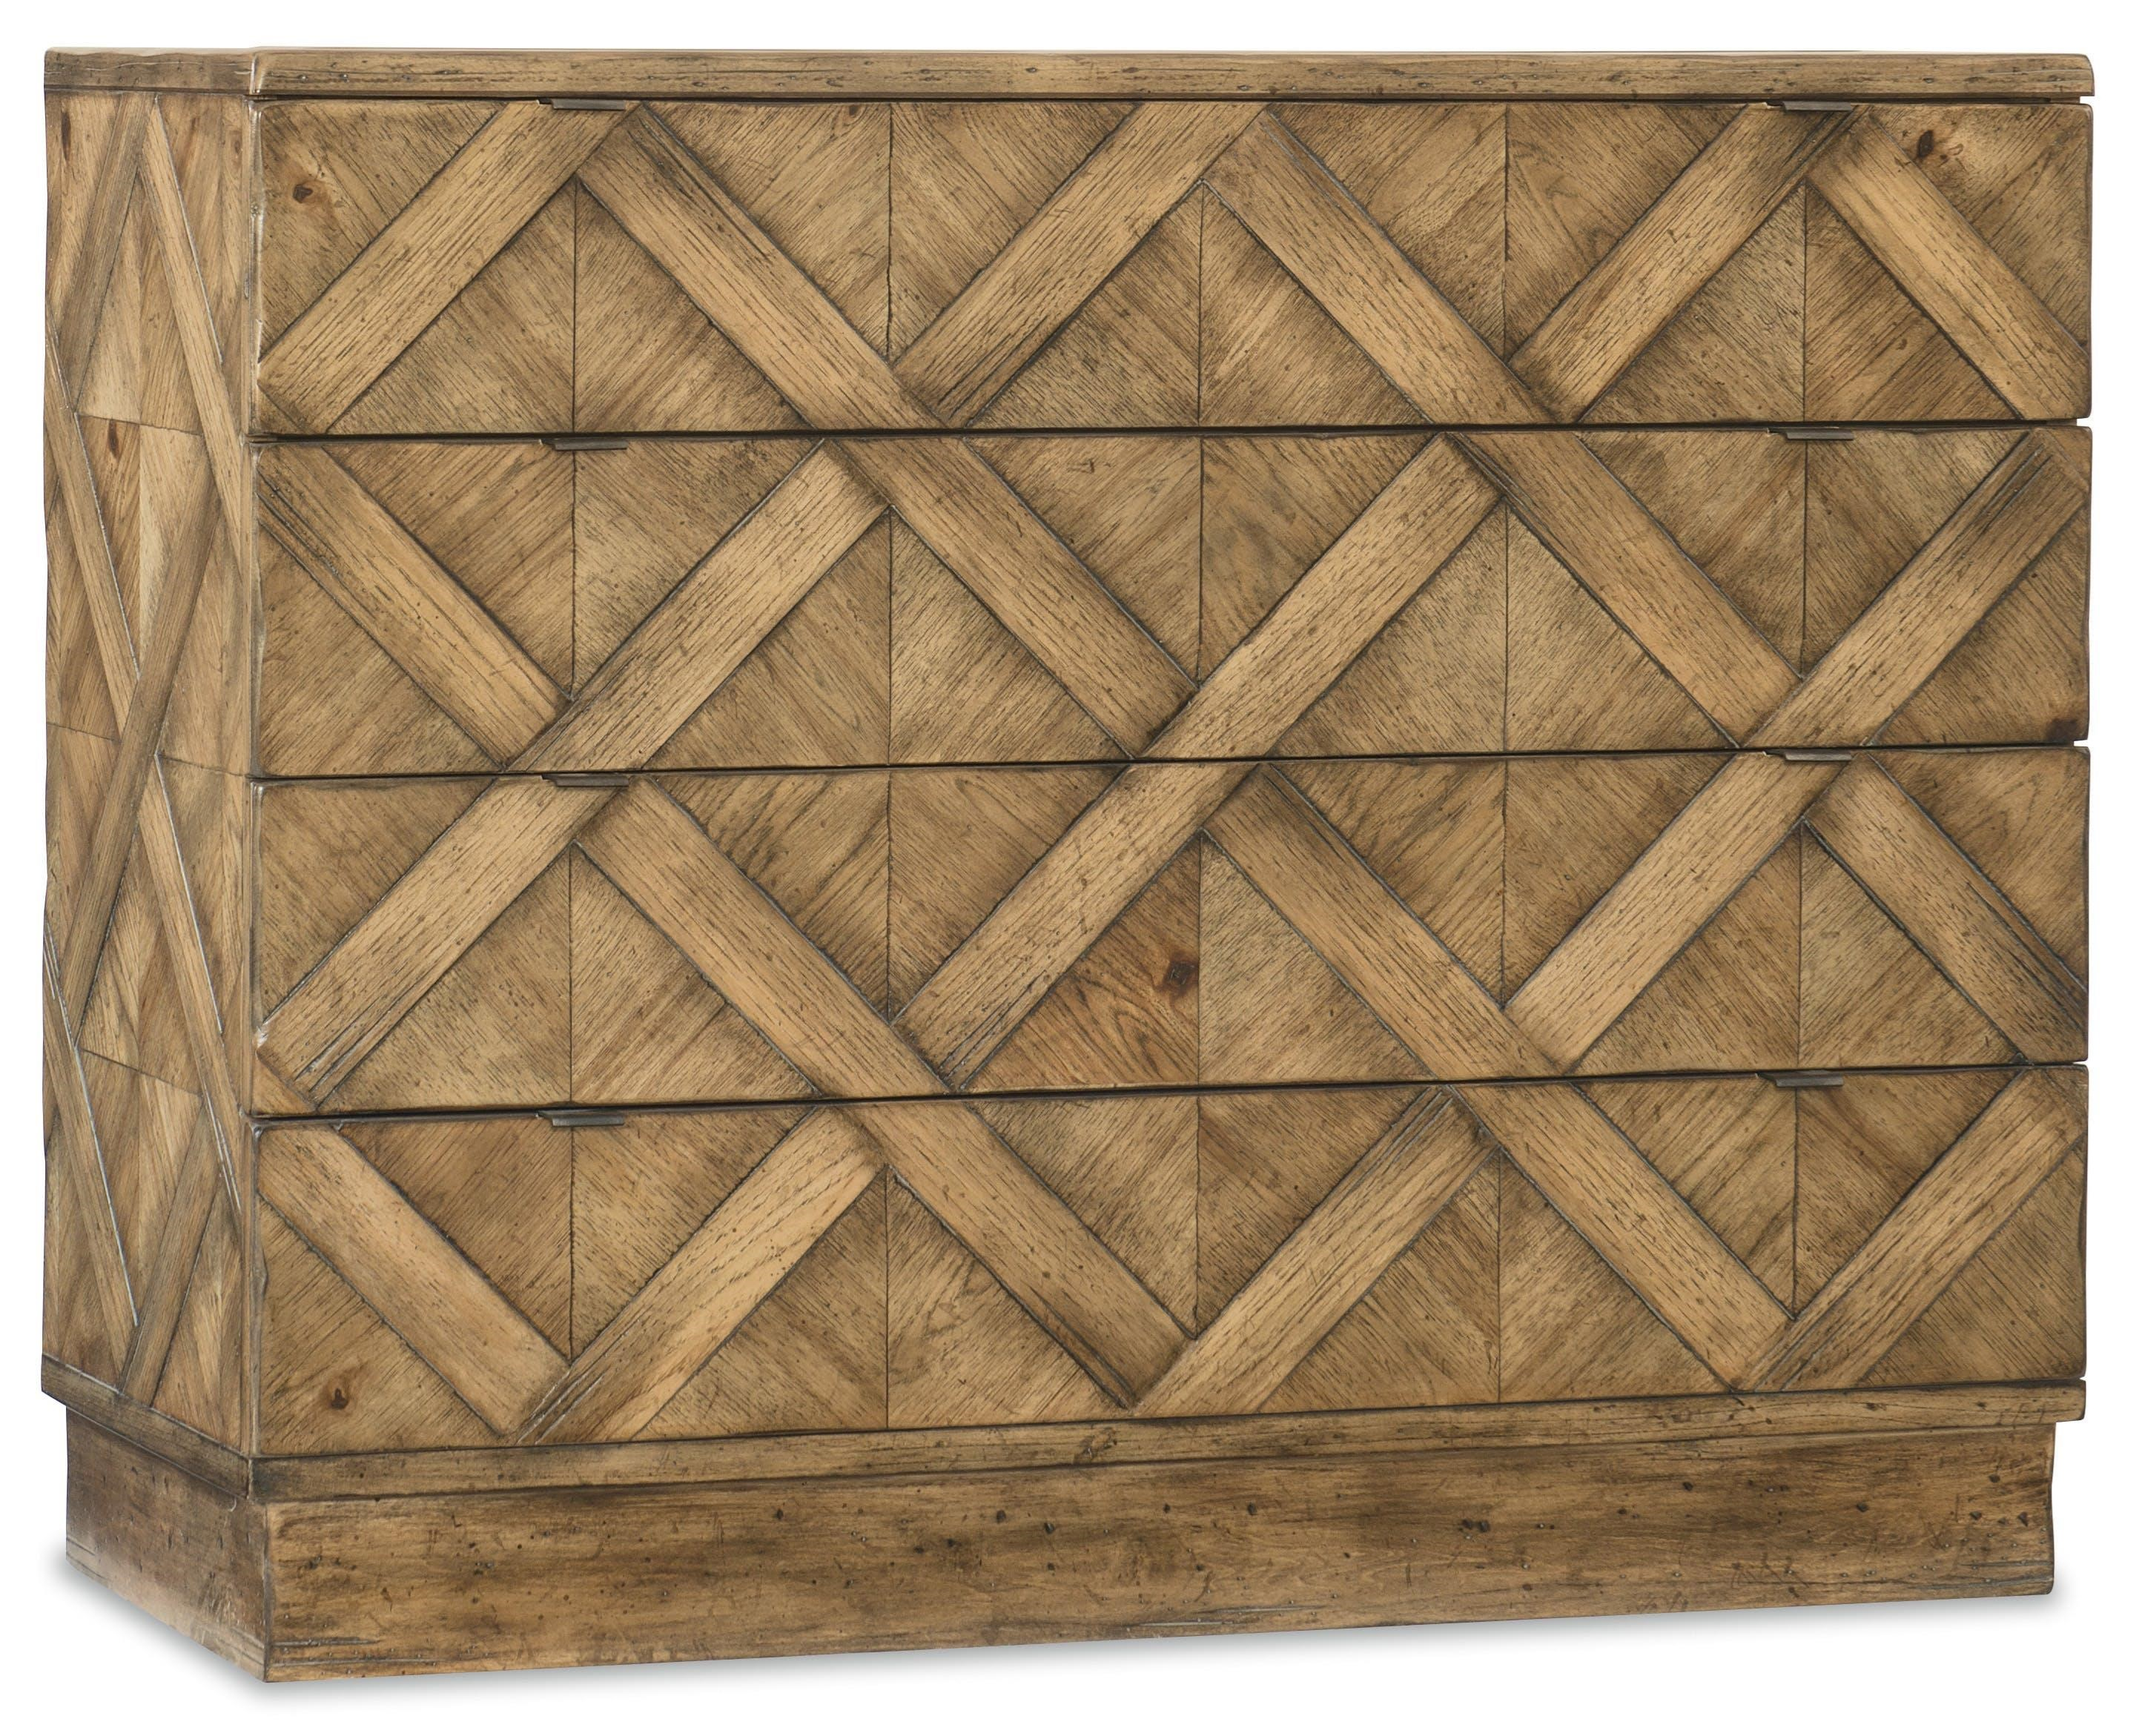 Hooker Furniture 1618-American Life Drawer Chest - Item Number: 1618-90017A-MWD